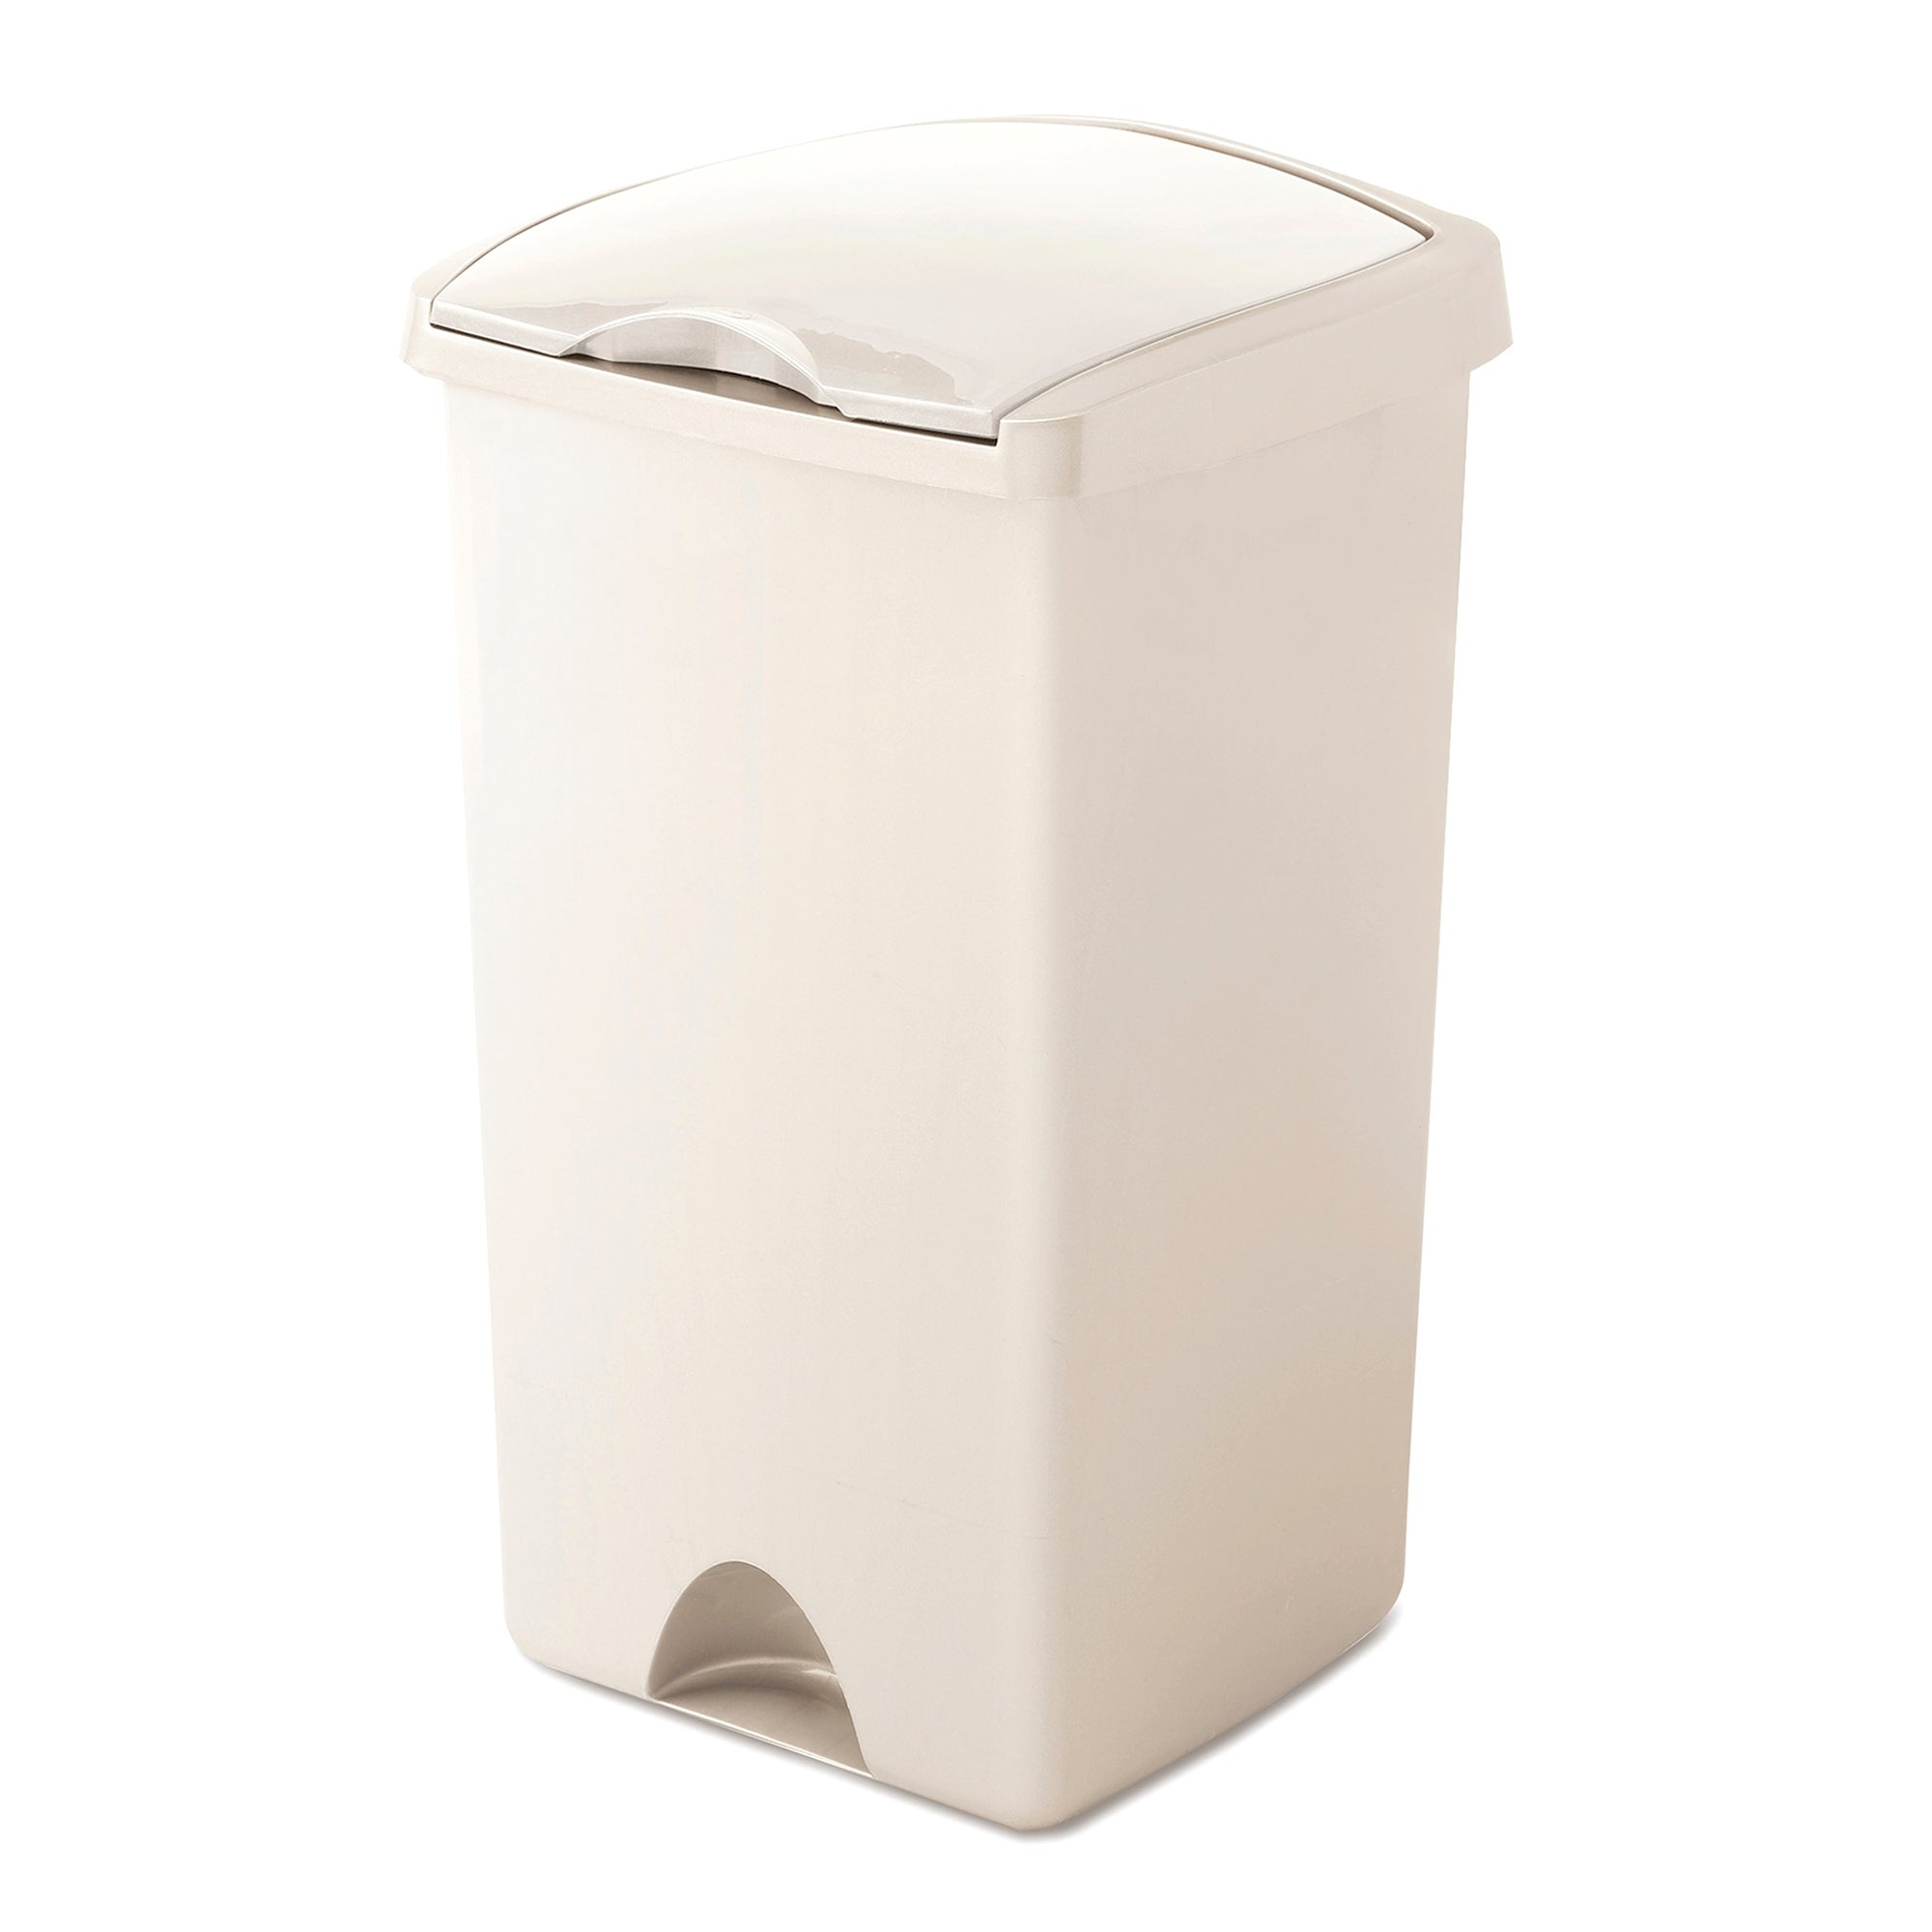 Addis Cream 48 Litre Lift Up Bin